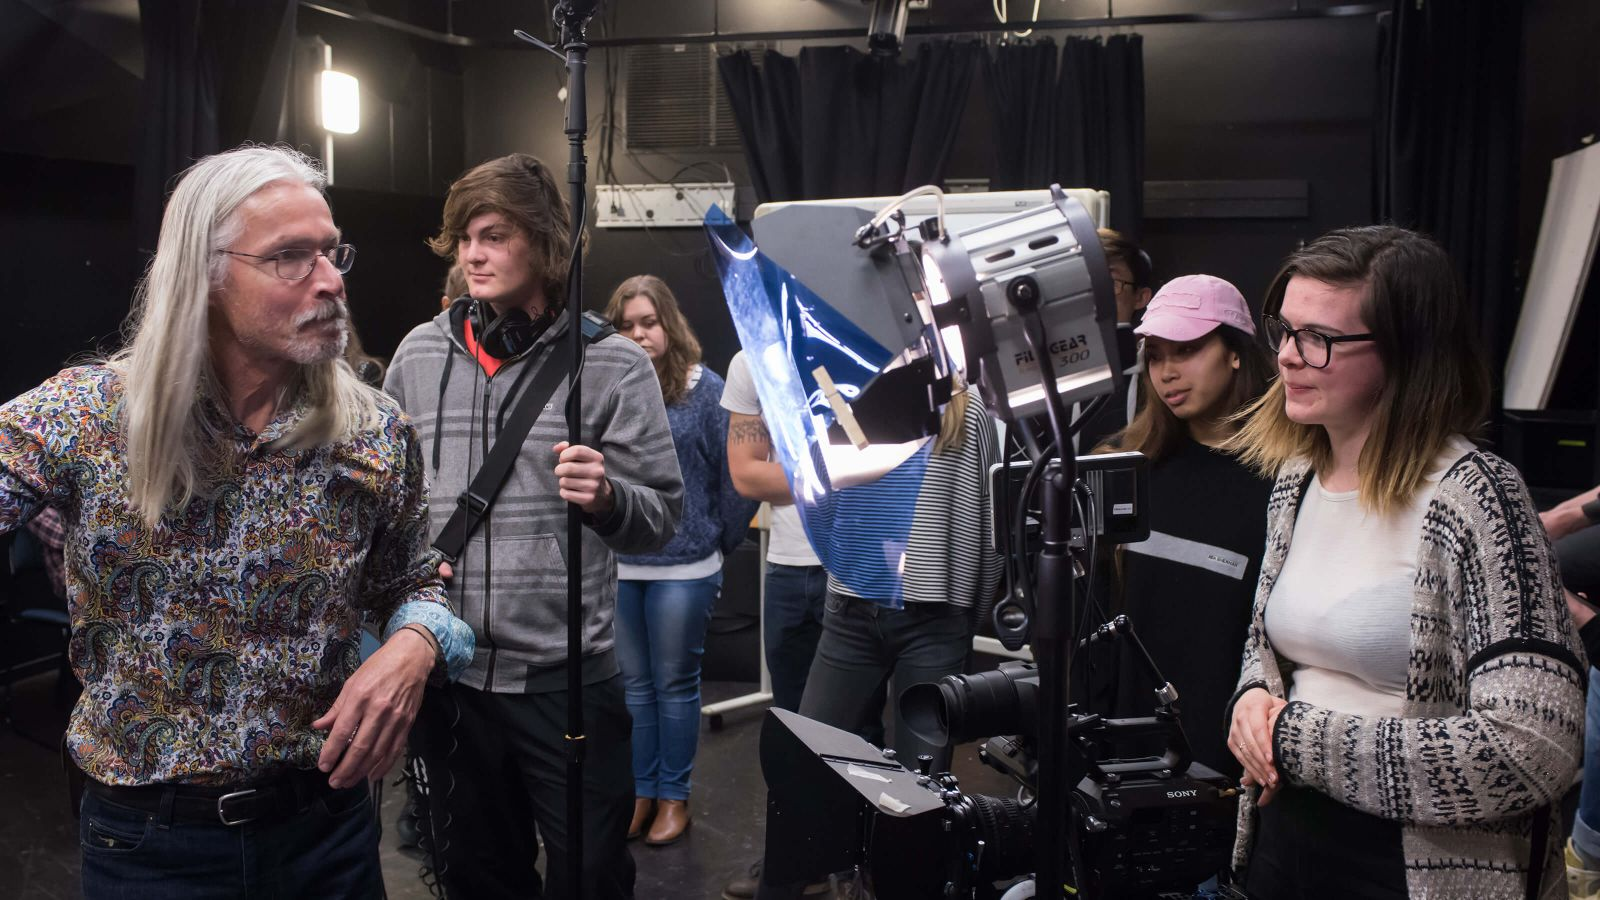 A film crew by a camera and lighting.